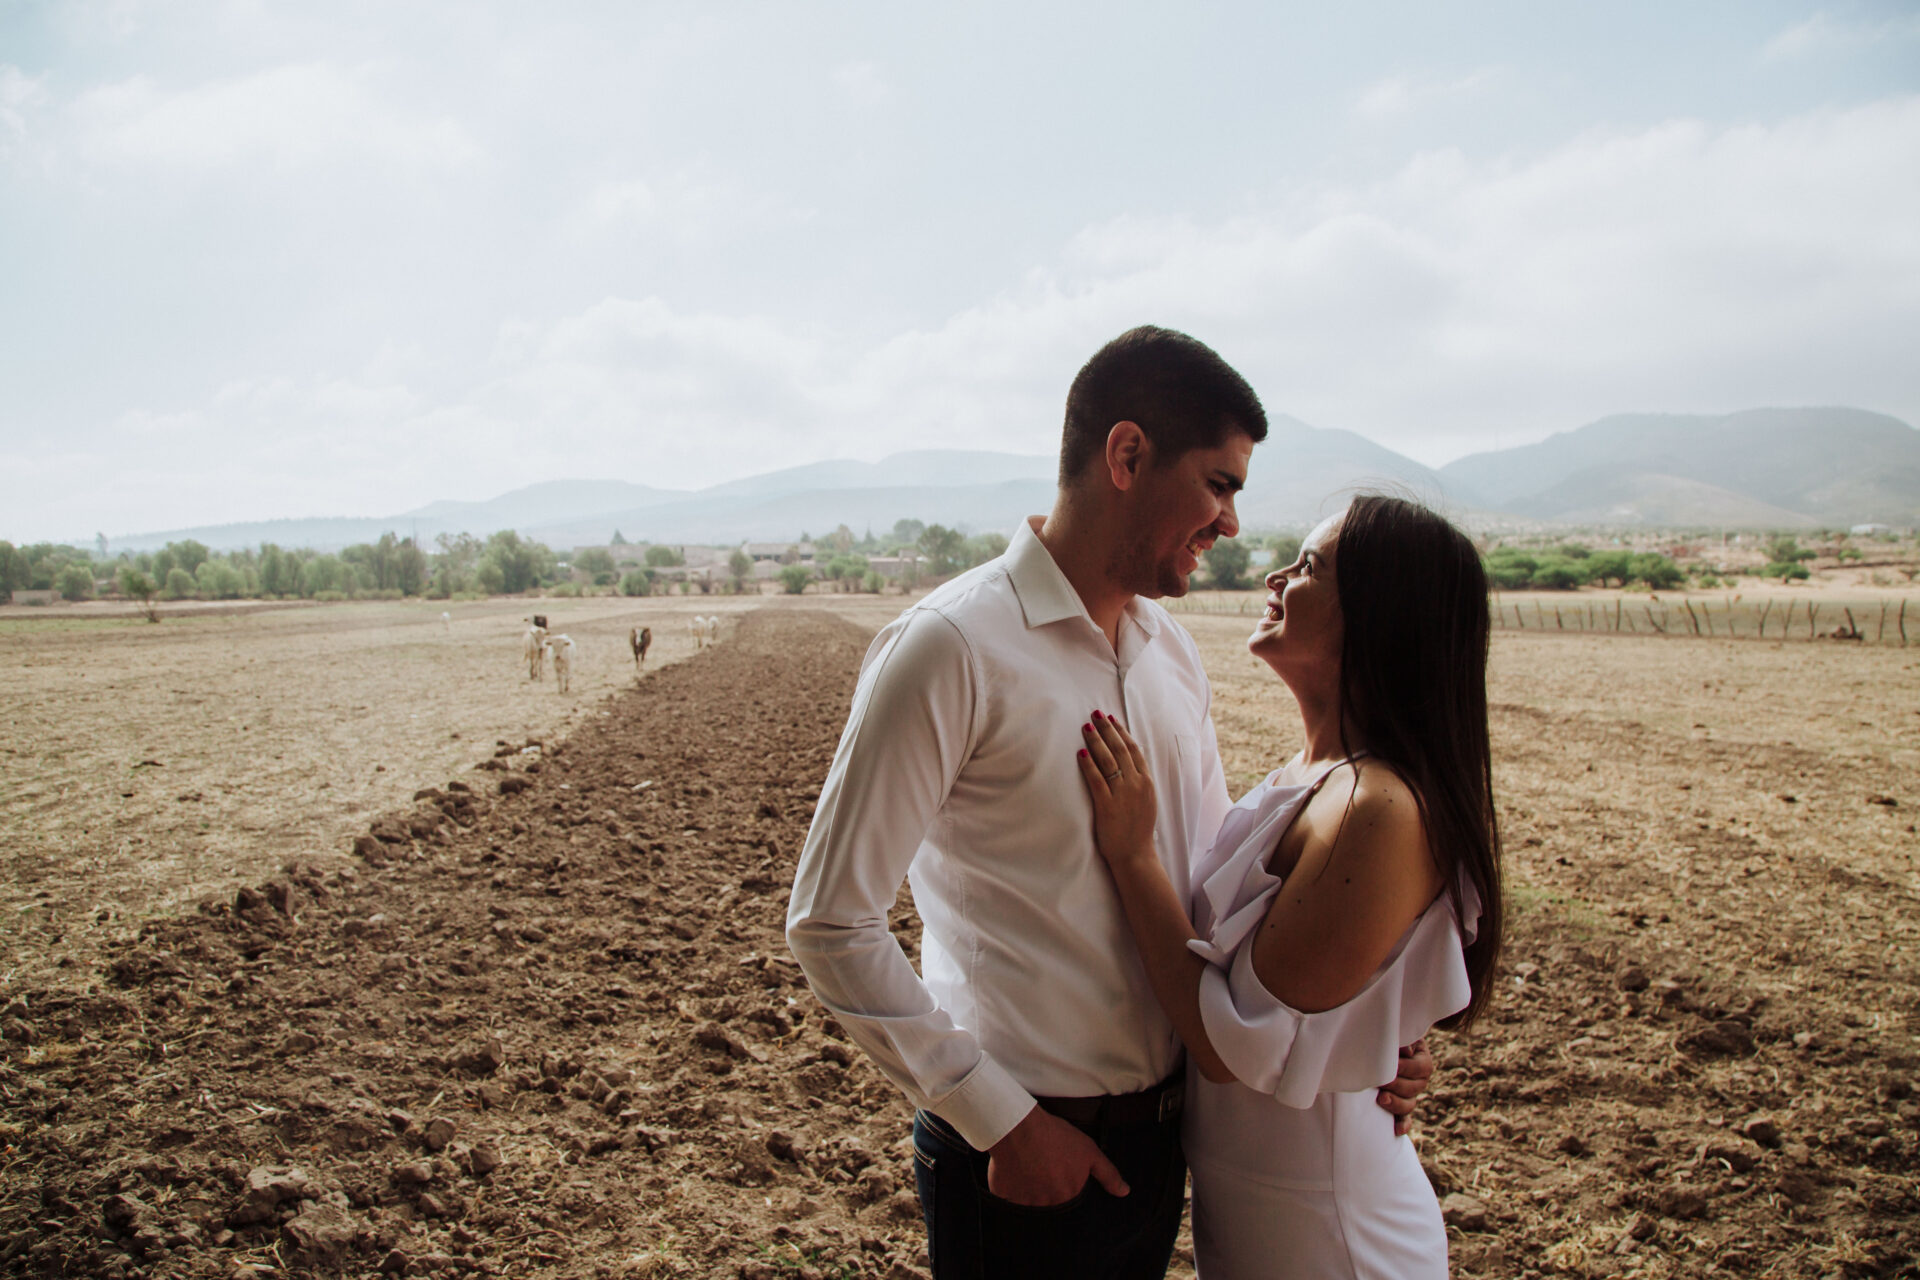 javier_noriega_fotografo_bodas_save_the_date_preboda_zacatecas_wedding_photographer17